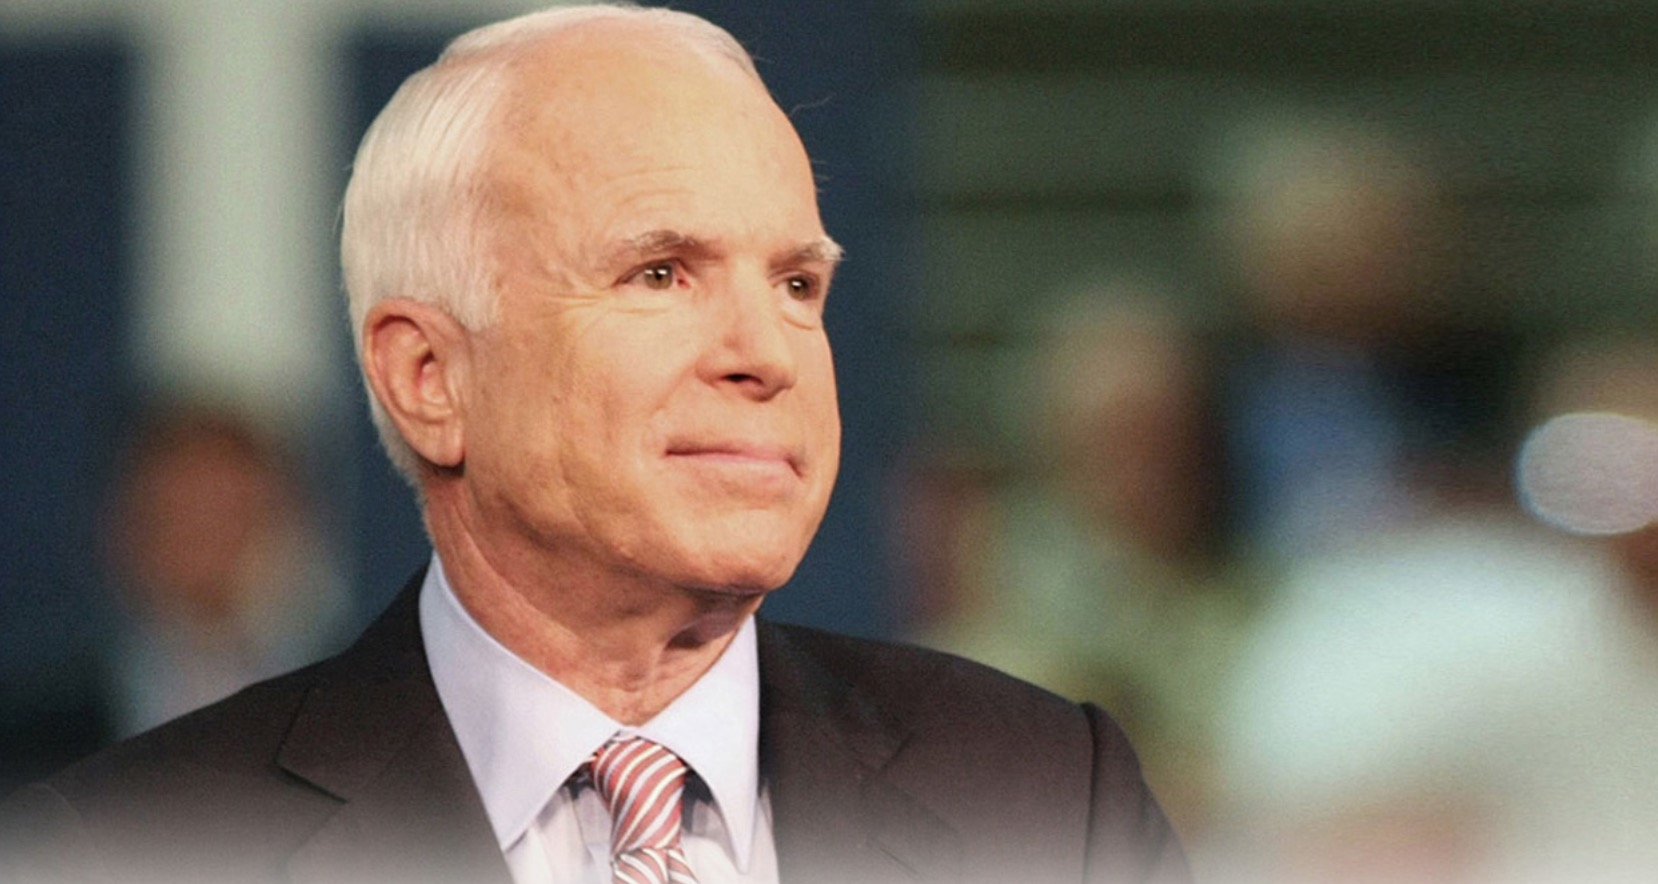 McCain allegedly asked Russia for campaign money